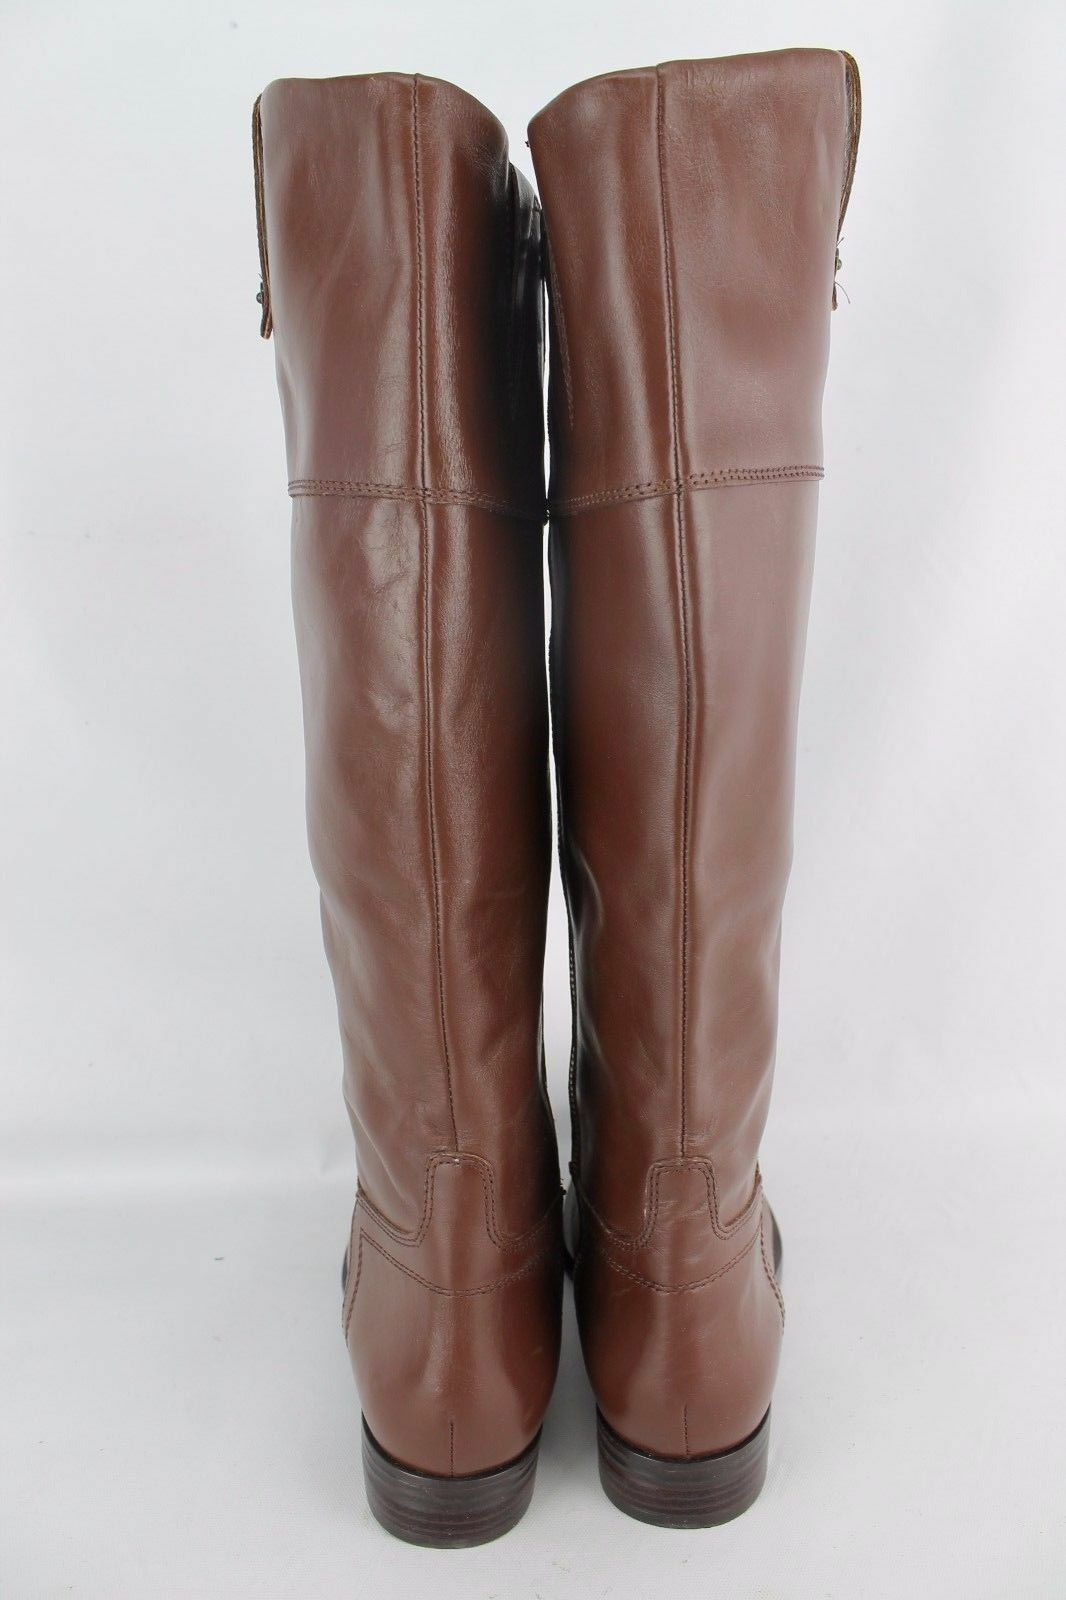 Enzo Enzo Enzo Angiolini Ellerby Brown Leather Knee-High Boots Sz 7 M NEW c247b7